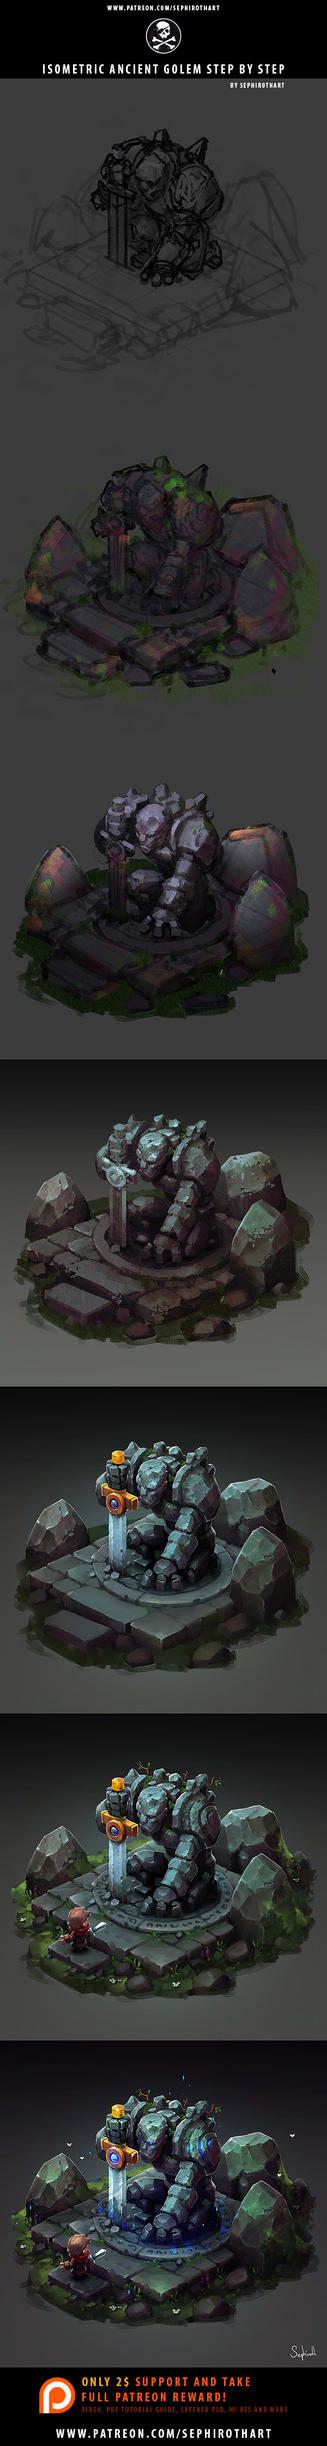 Isometric Golem Step-by-Step by Sephiroth-Art